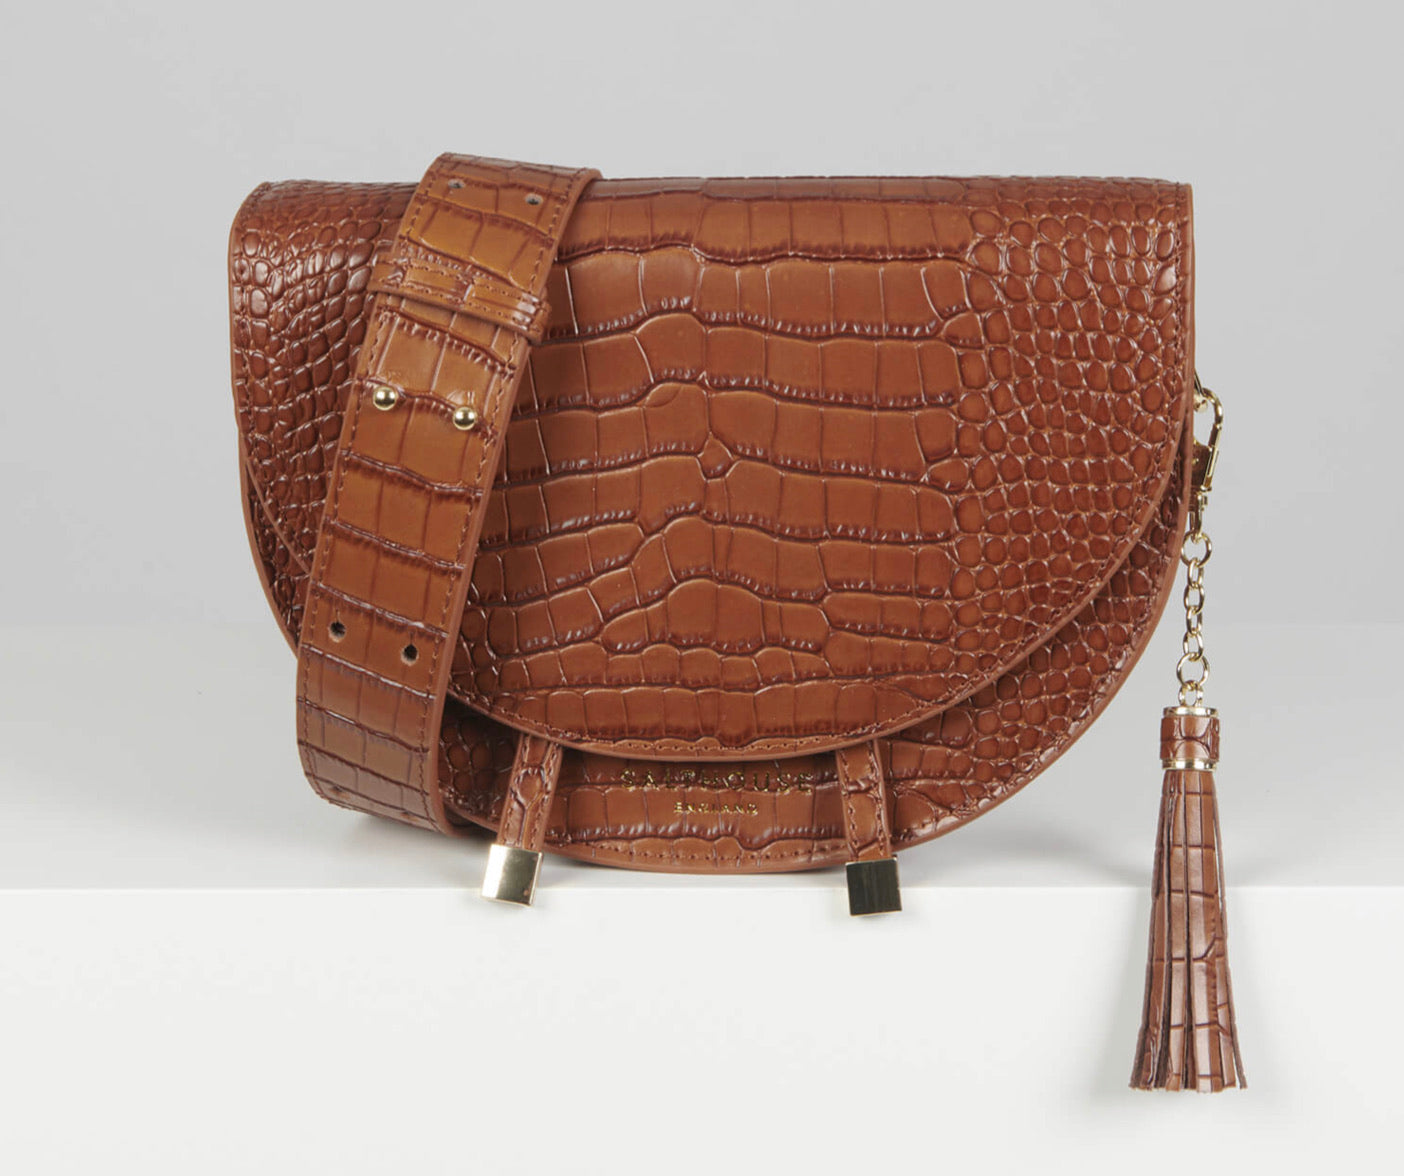 Salthouse Floriana Croc Embrossed Leather Crossbody Bag - Chestnut